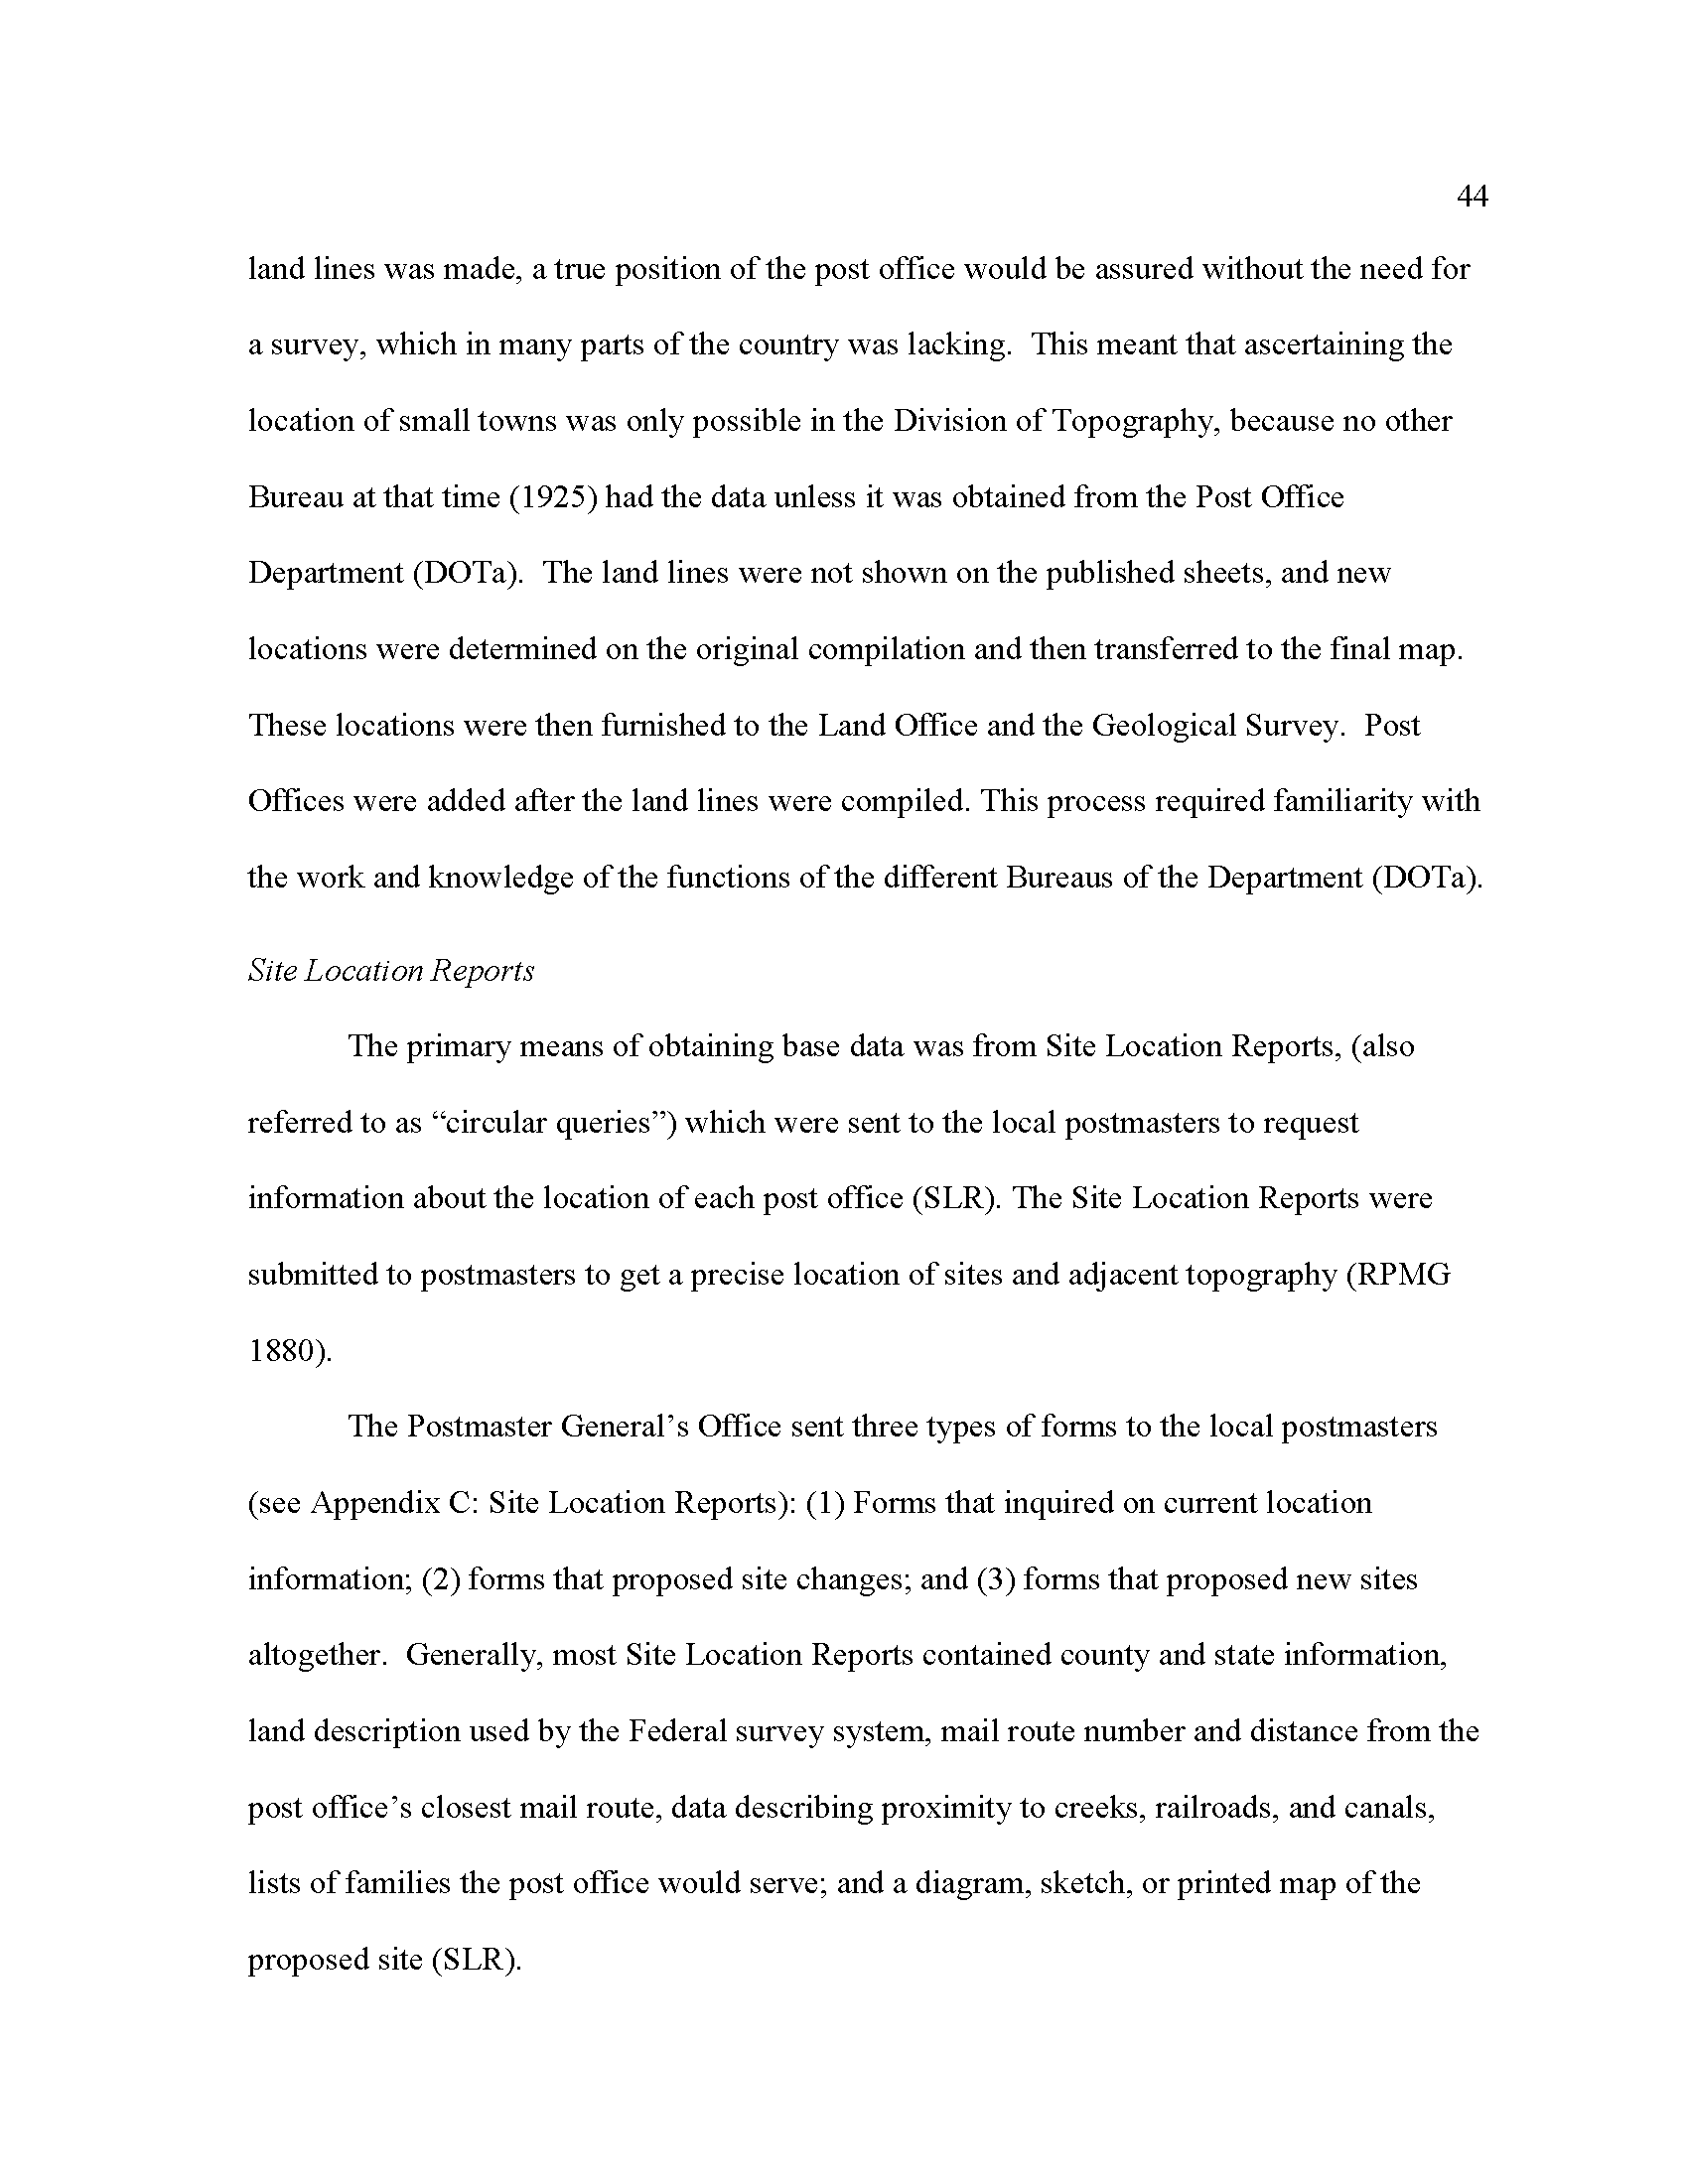 Thesis Final_Page_048.png